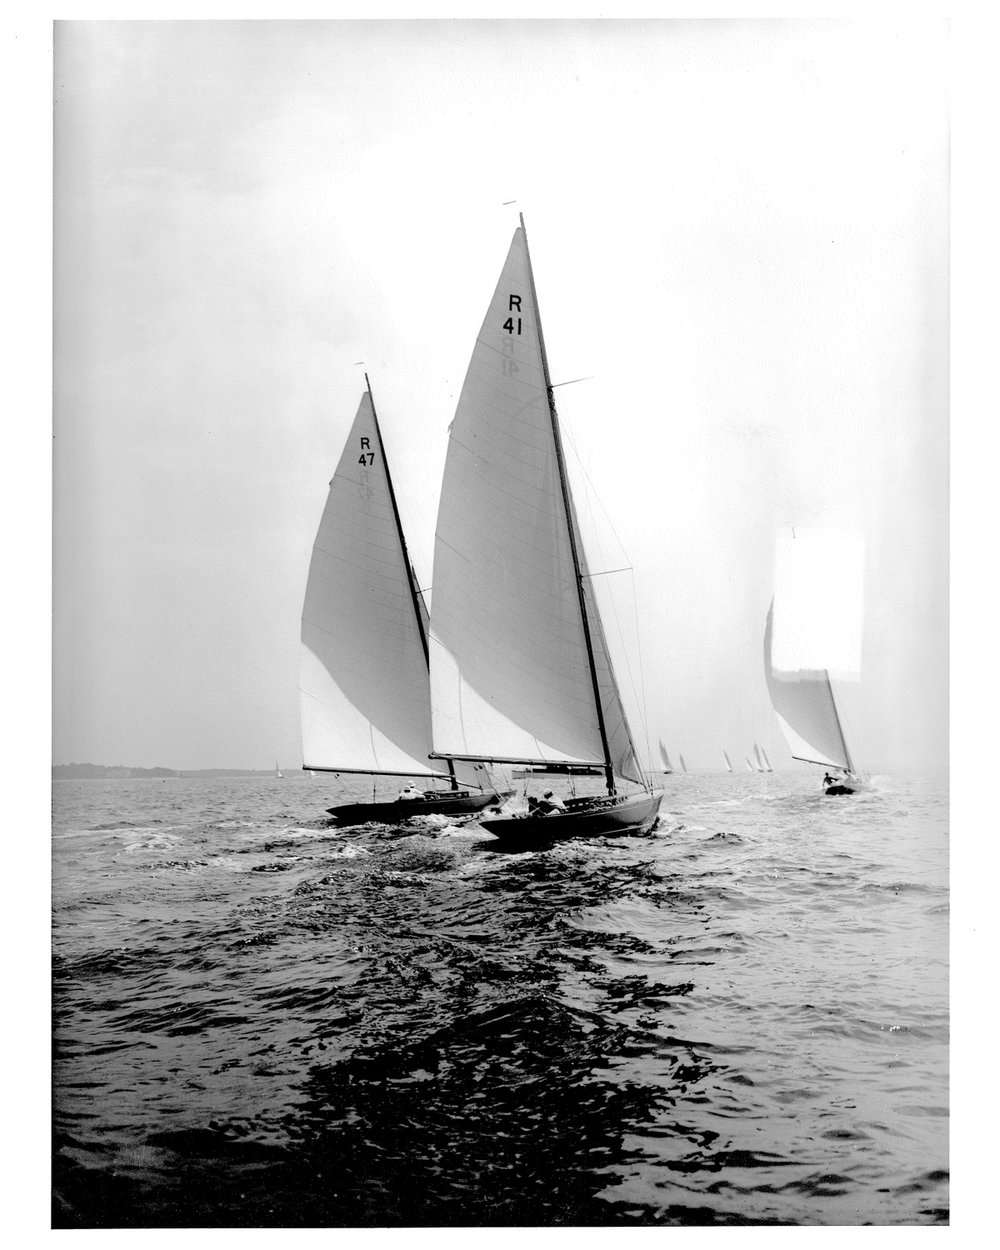 """Levic Collection, """"FIFI R 41"""" 1925 Long Island Sound"""